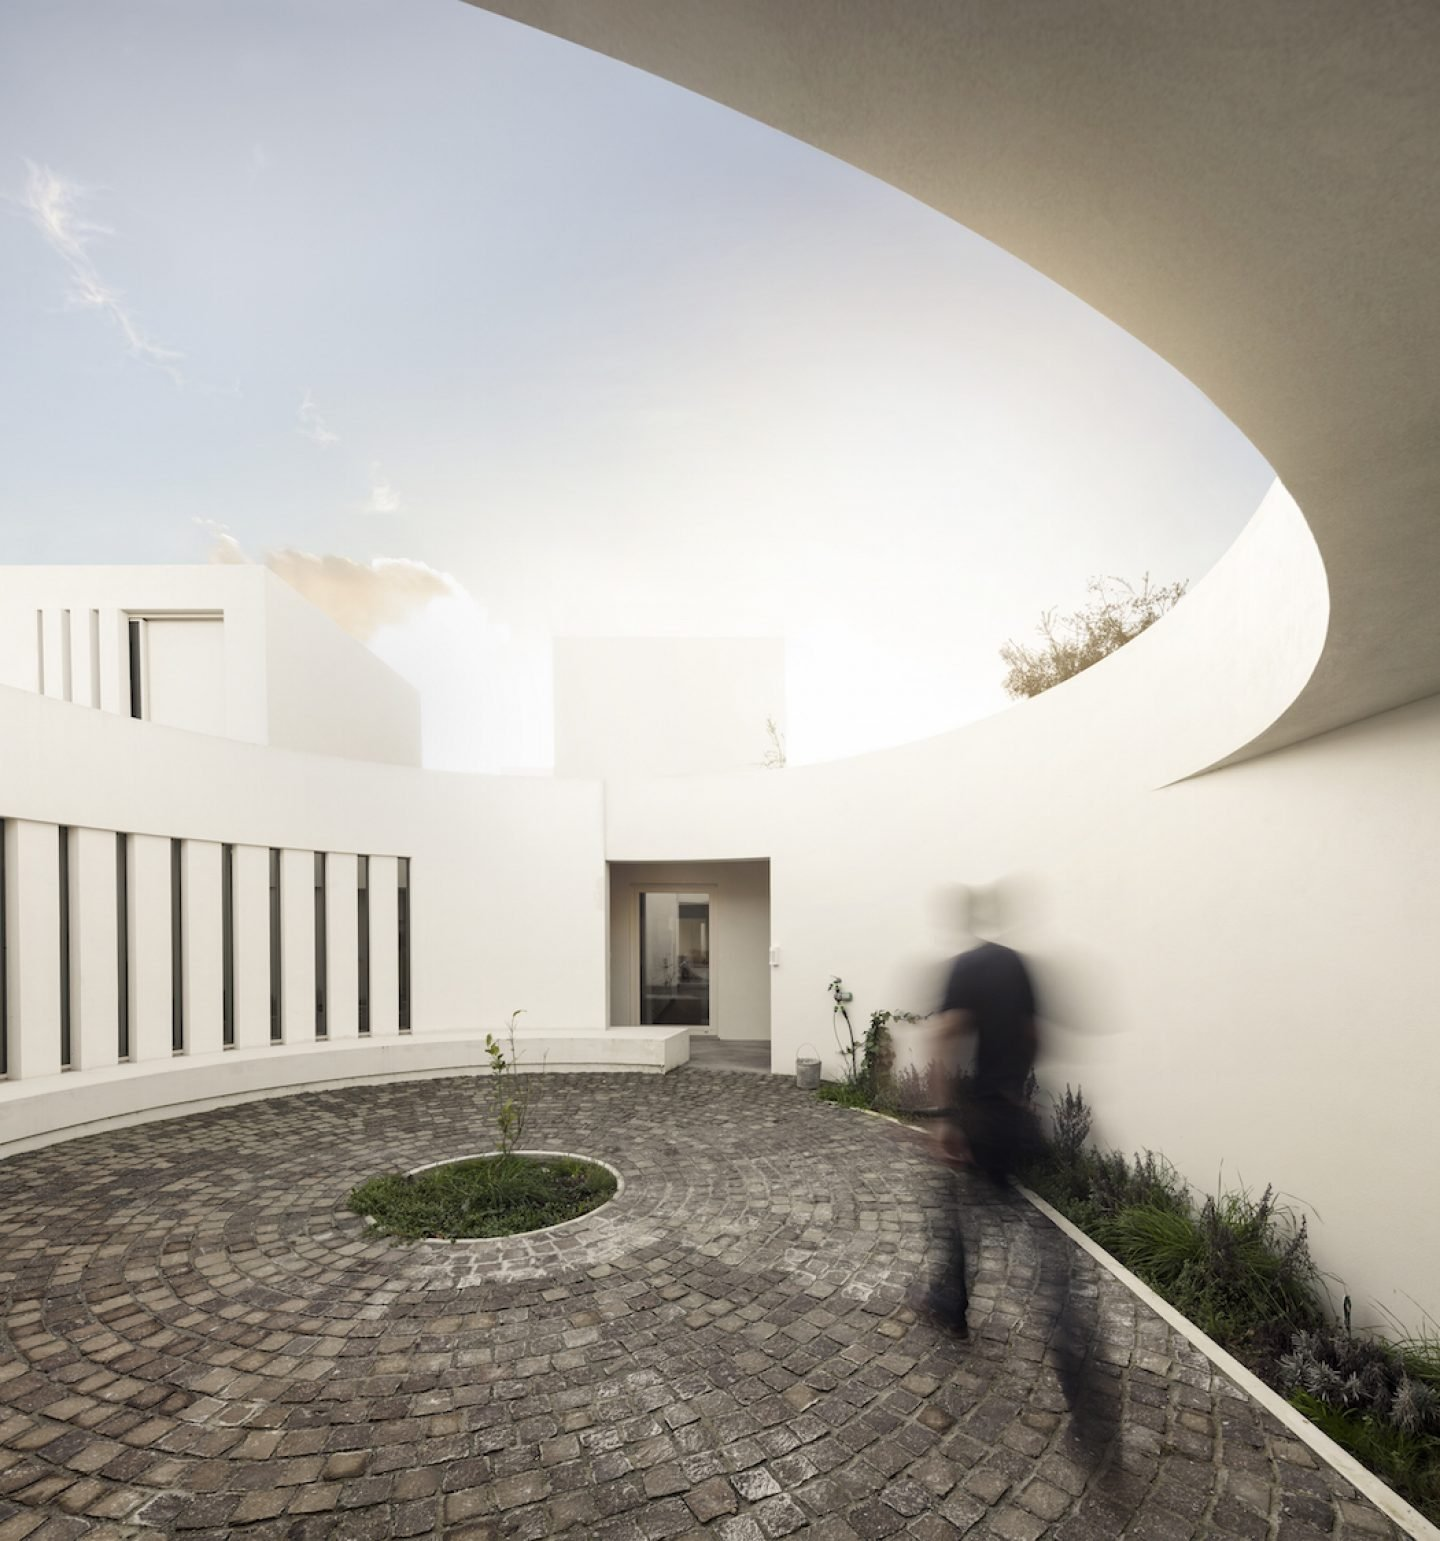 atelier-dos-remedios_architecture_017